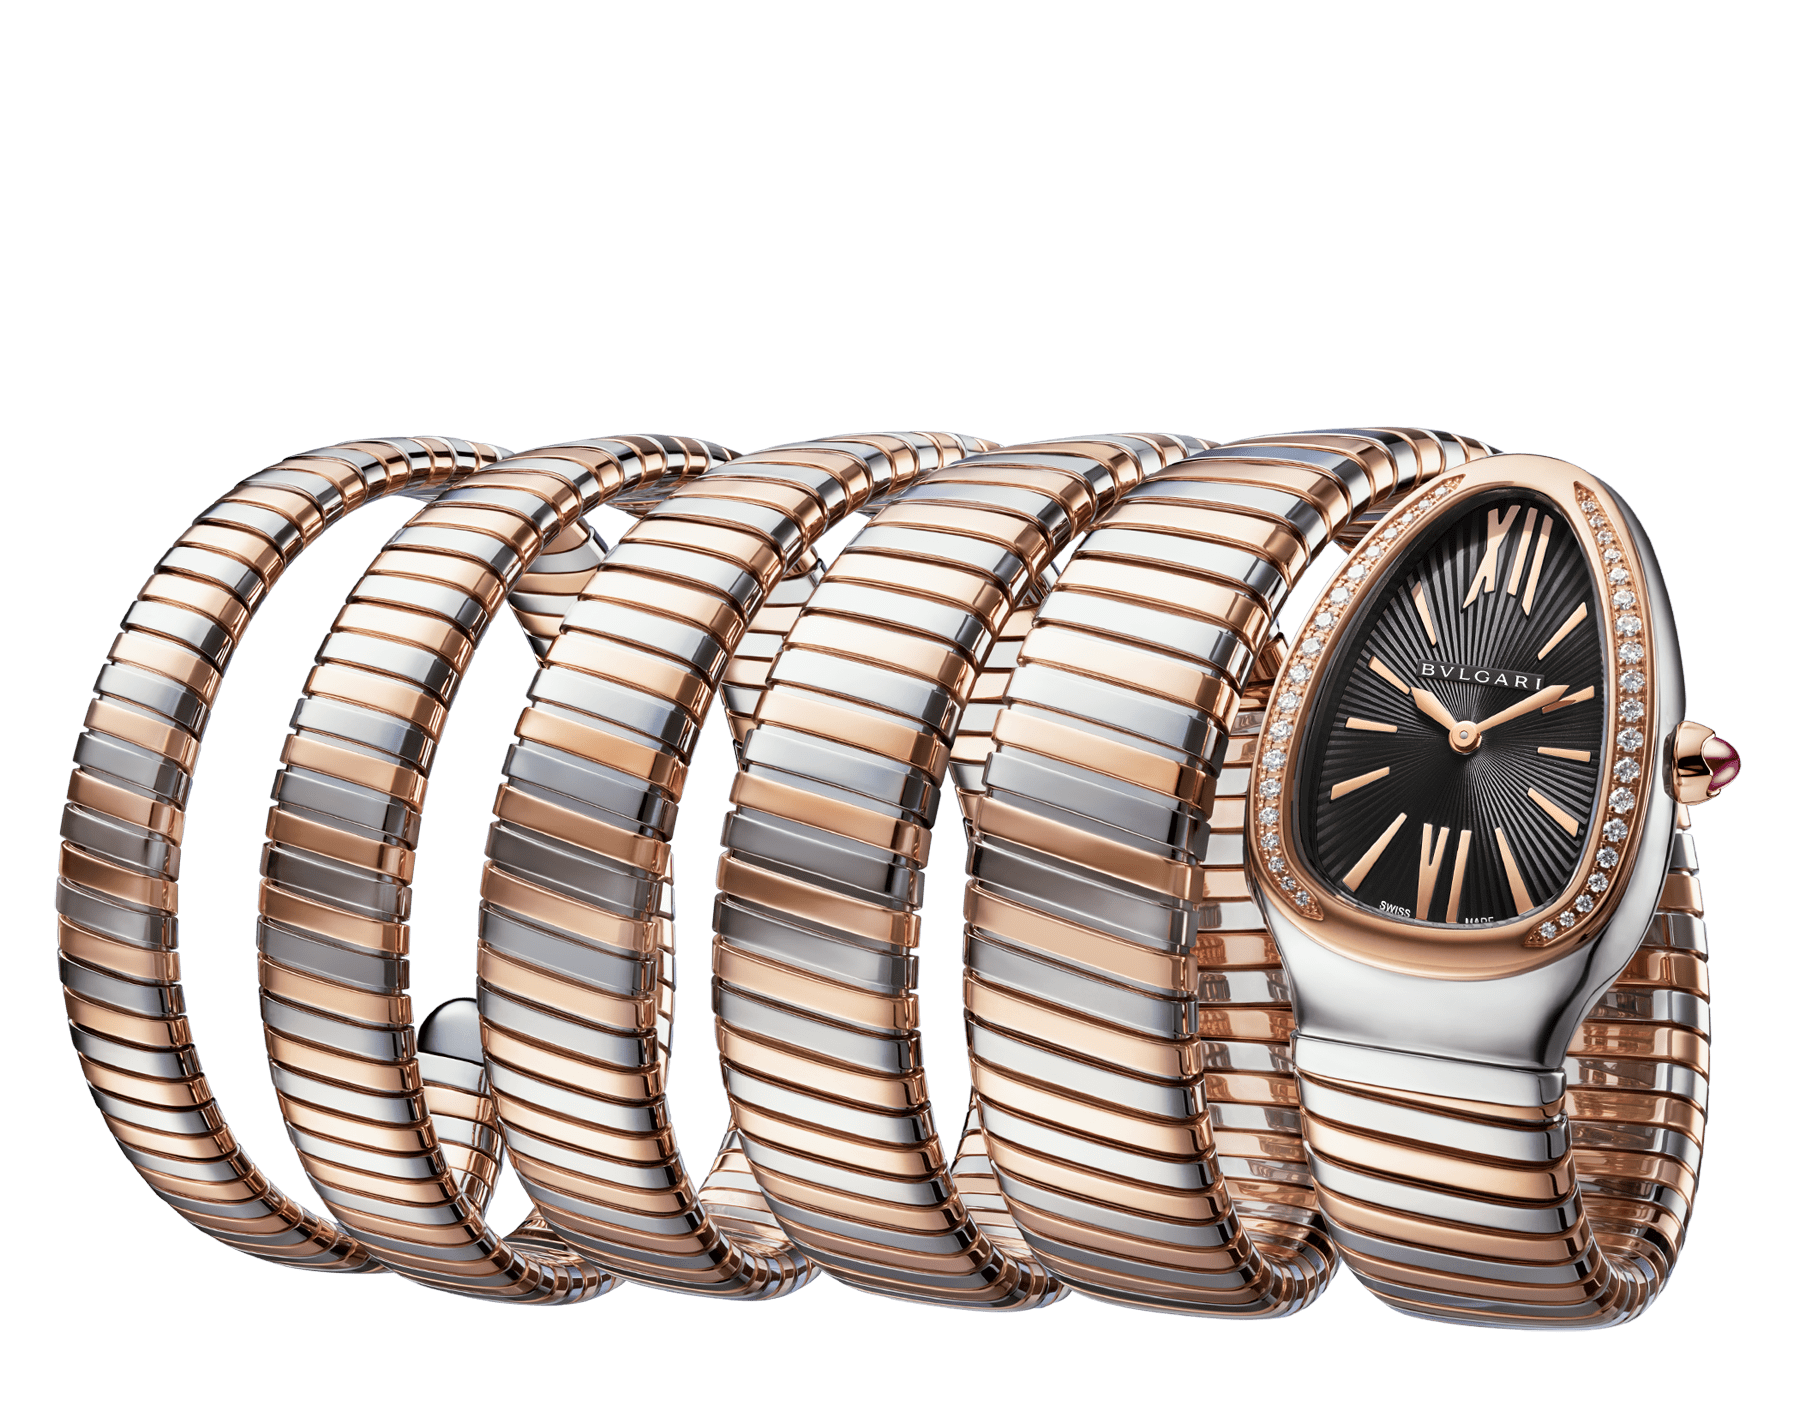 Serpenti Tubogas five-spiral watch with stainless steel case, 18 kt rose gold bezel set with brilliant cut diamonds, black lacquered dial, 18 kt rose gold and stainless steel bracelet. 102621 image 1